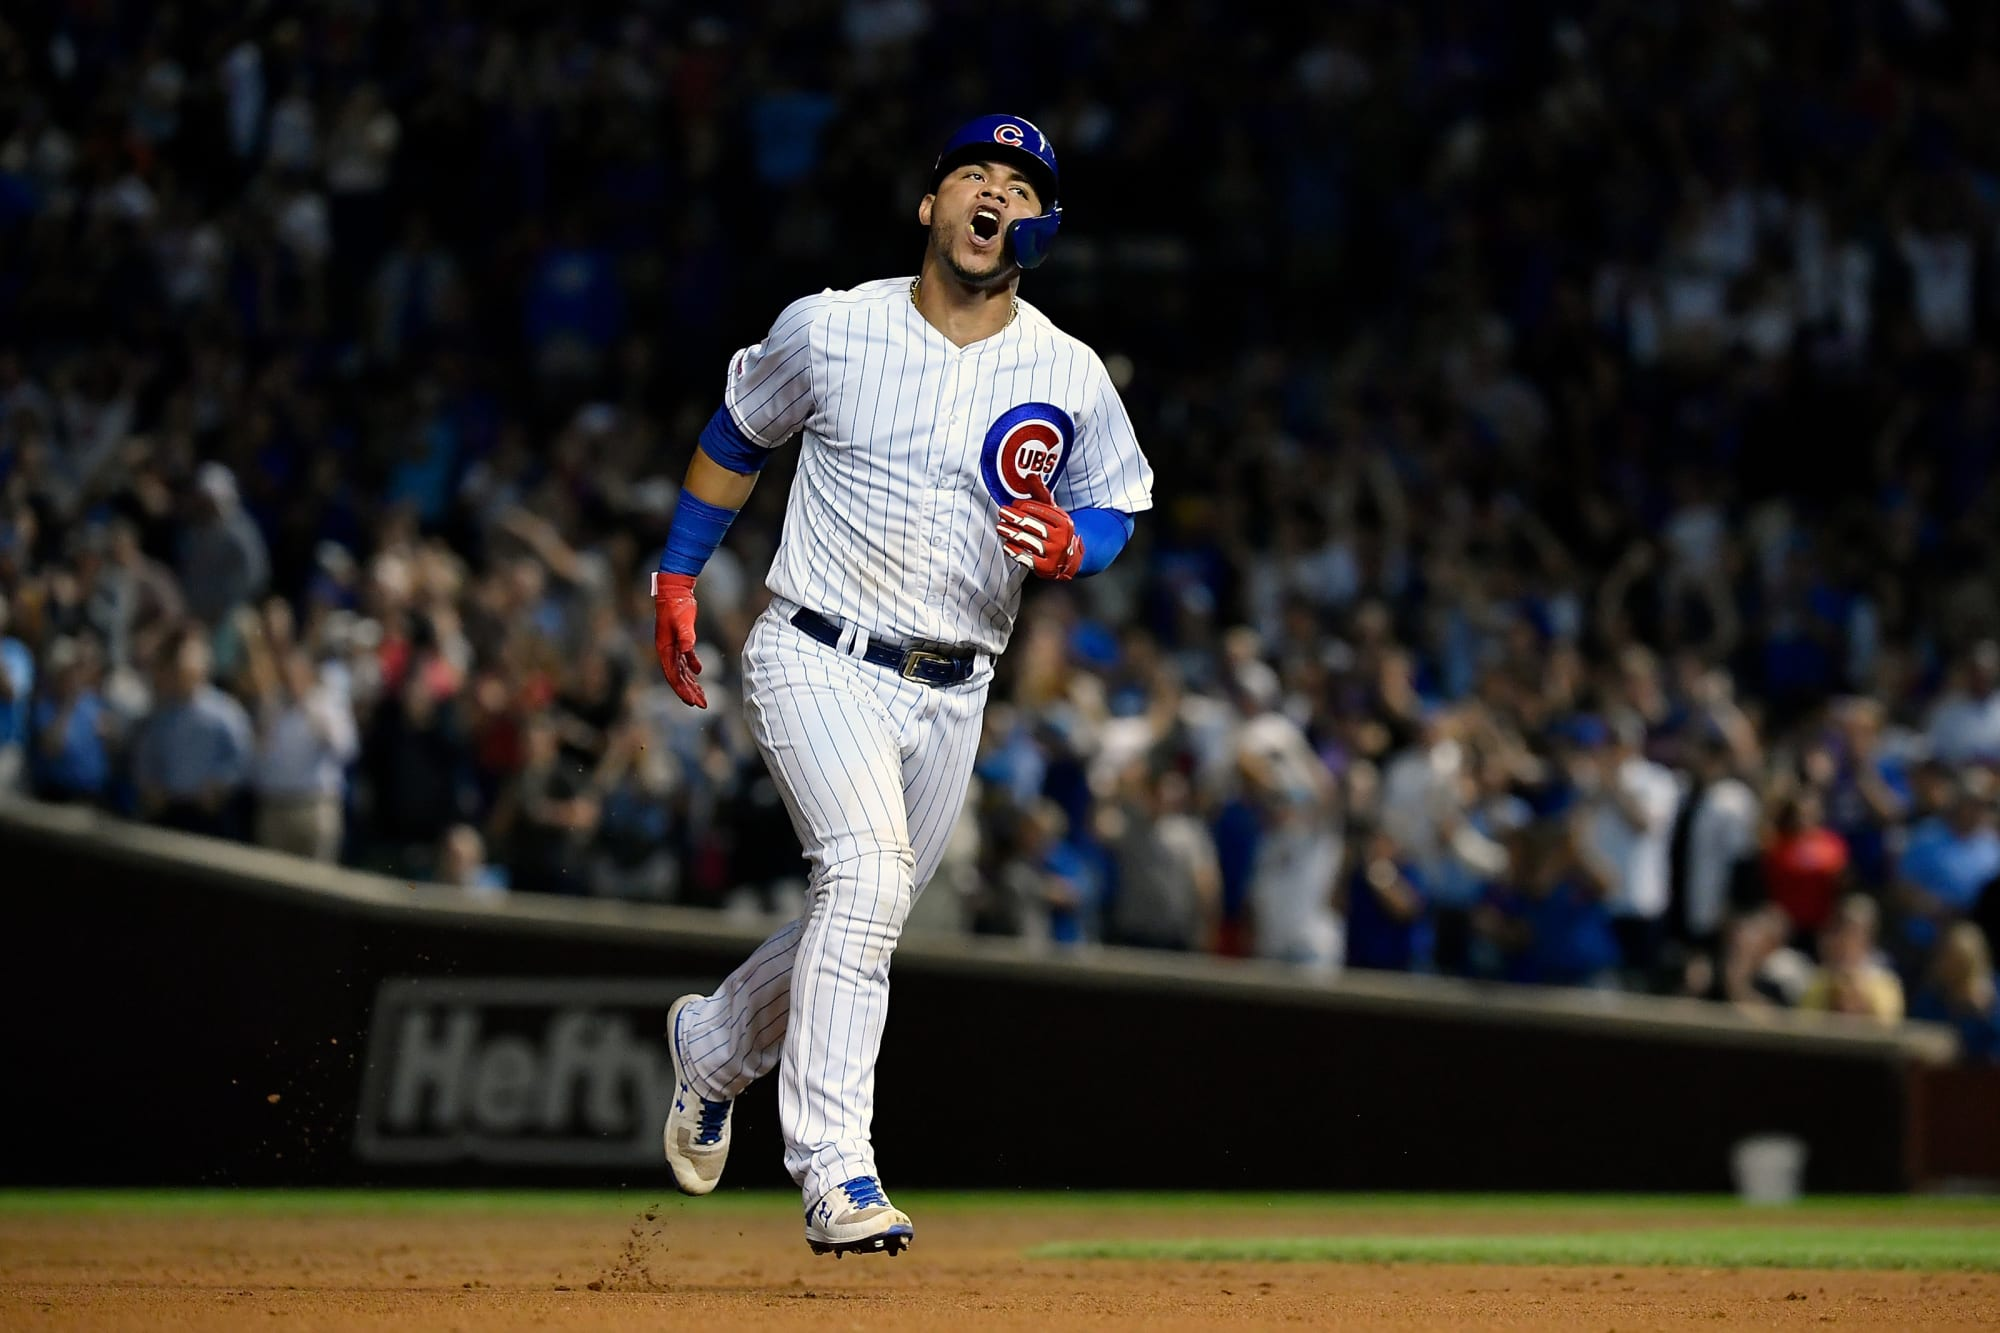 This Cubs-Rays trade for Willson Contreras could actually work